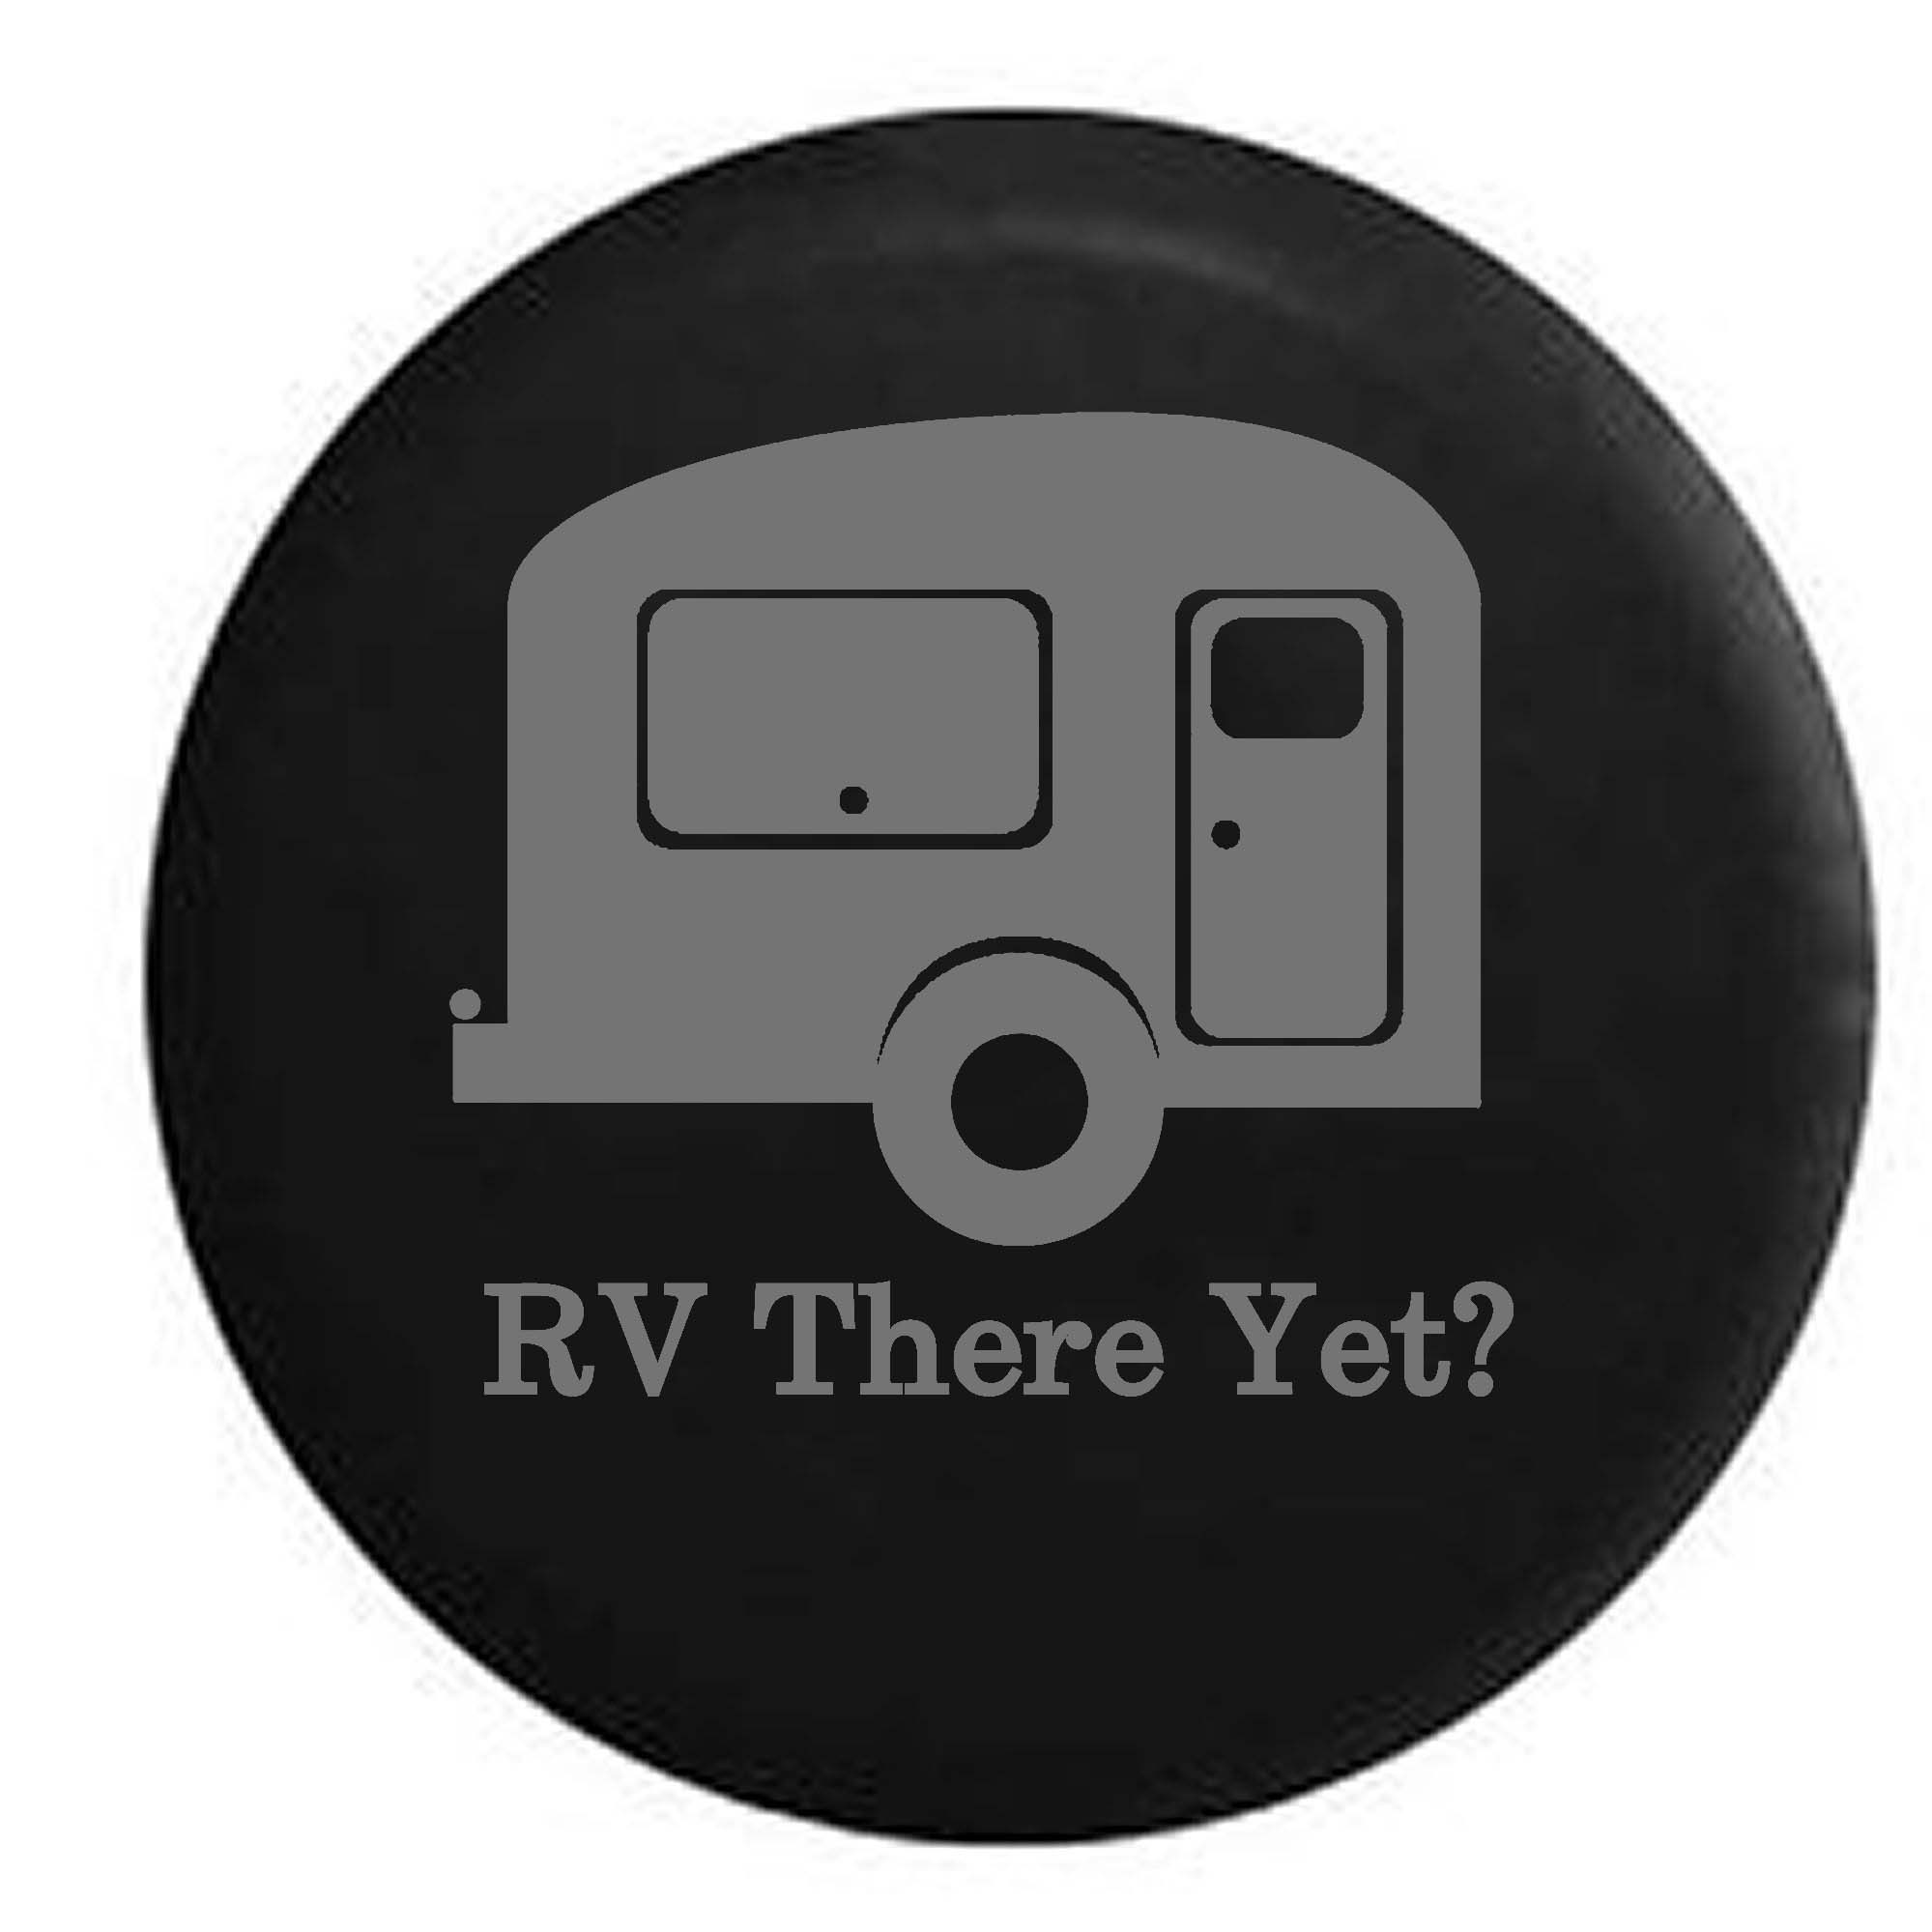 RV There Yet? TravelCamper Trailer Spare Tire Cover Vinyl Black 27.5 in